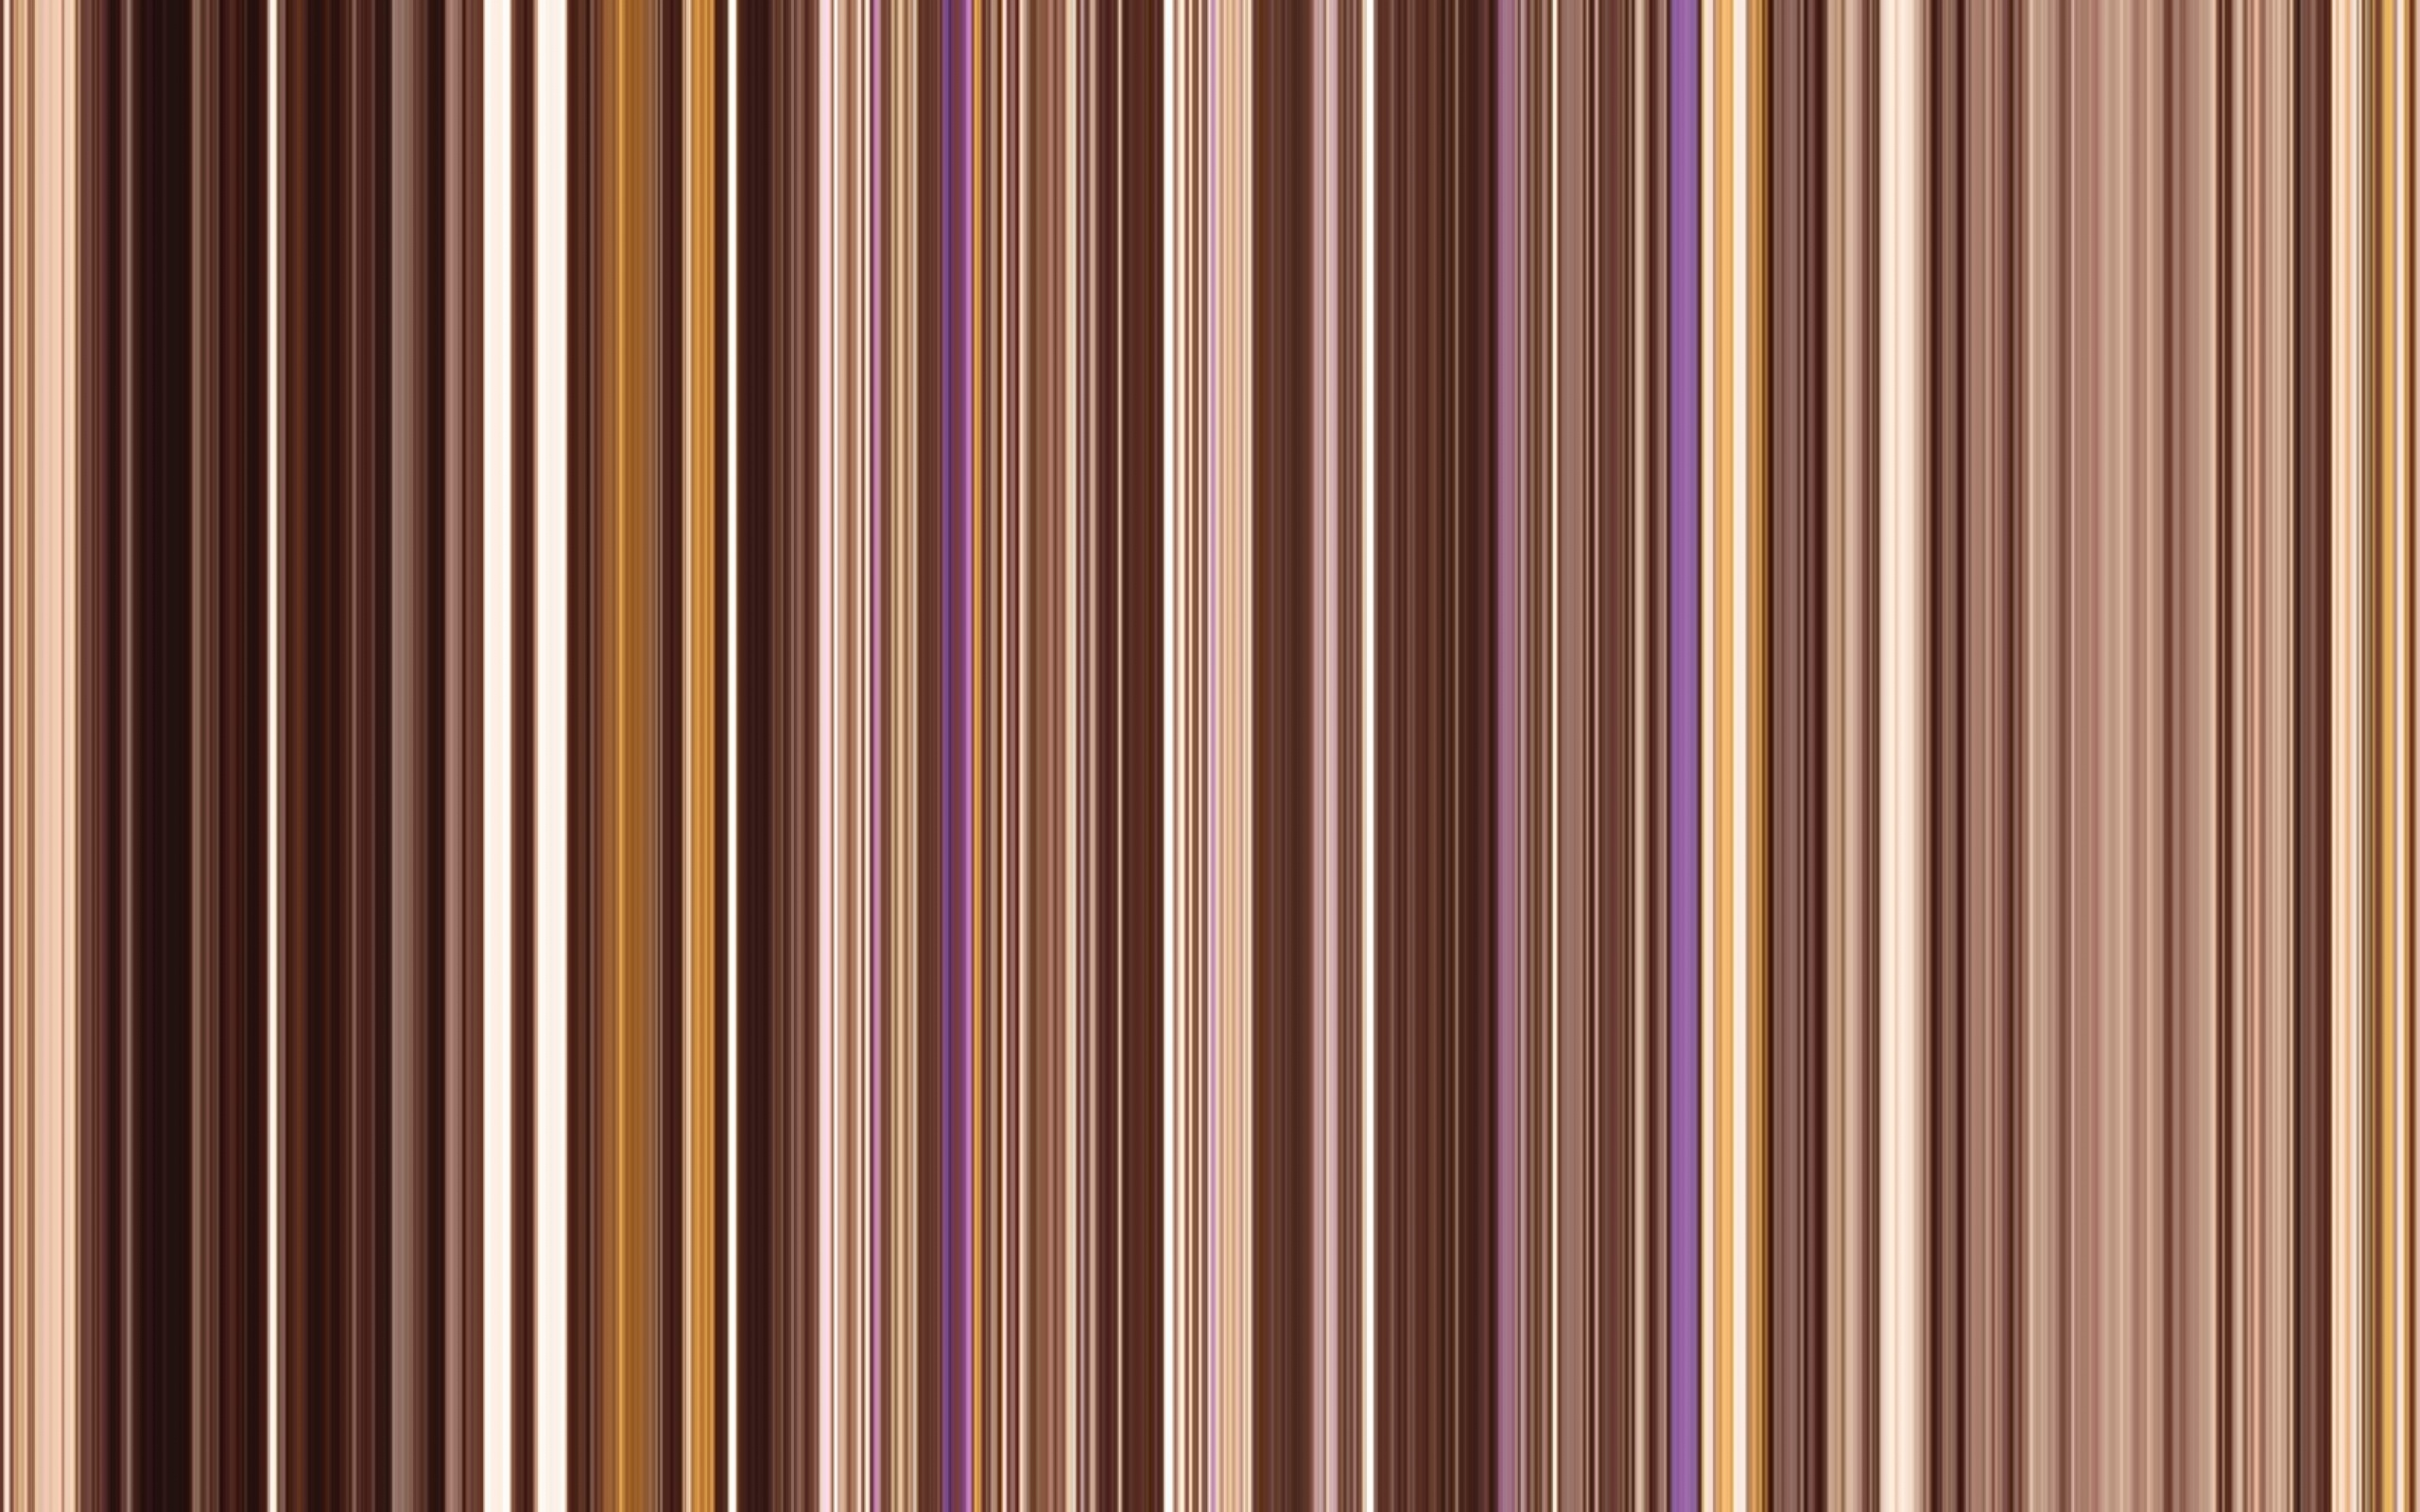 vertical lines, floor, texture, vertical lines texture, backgrounds, background for website